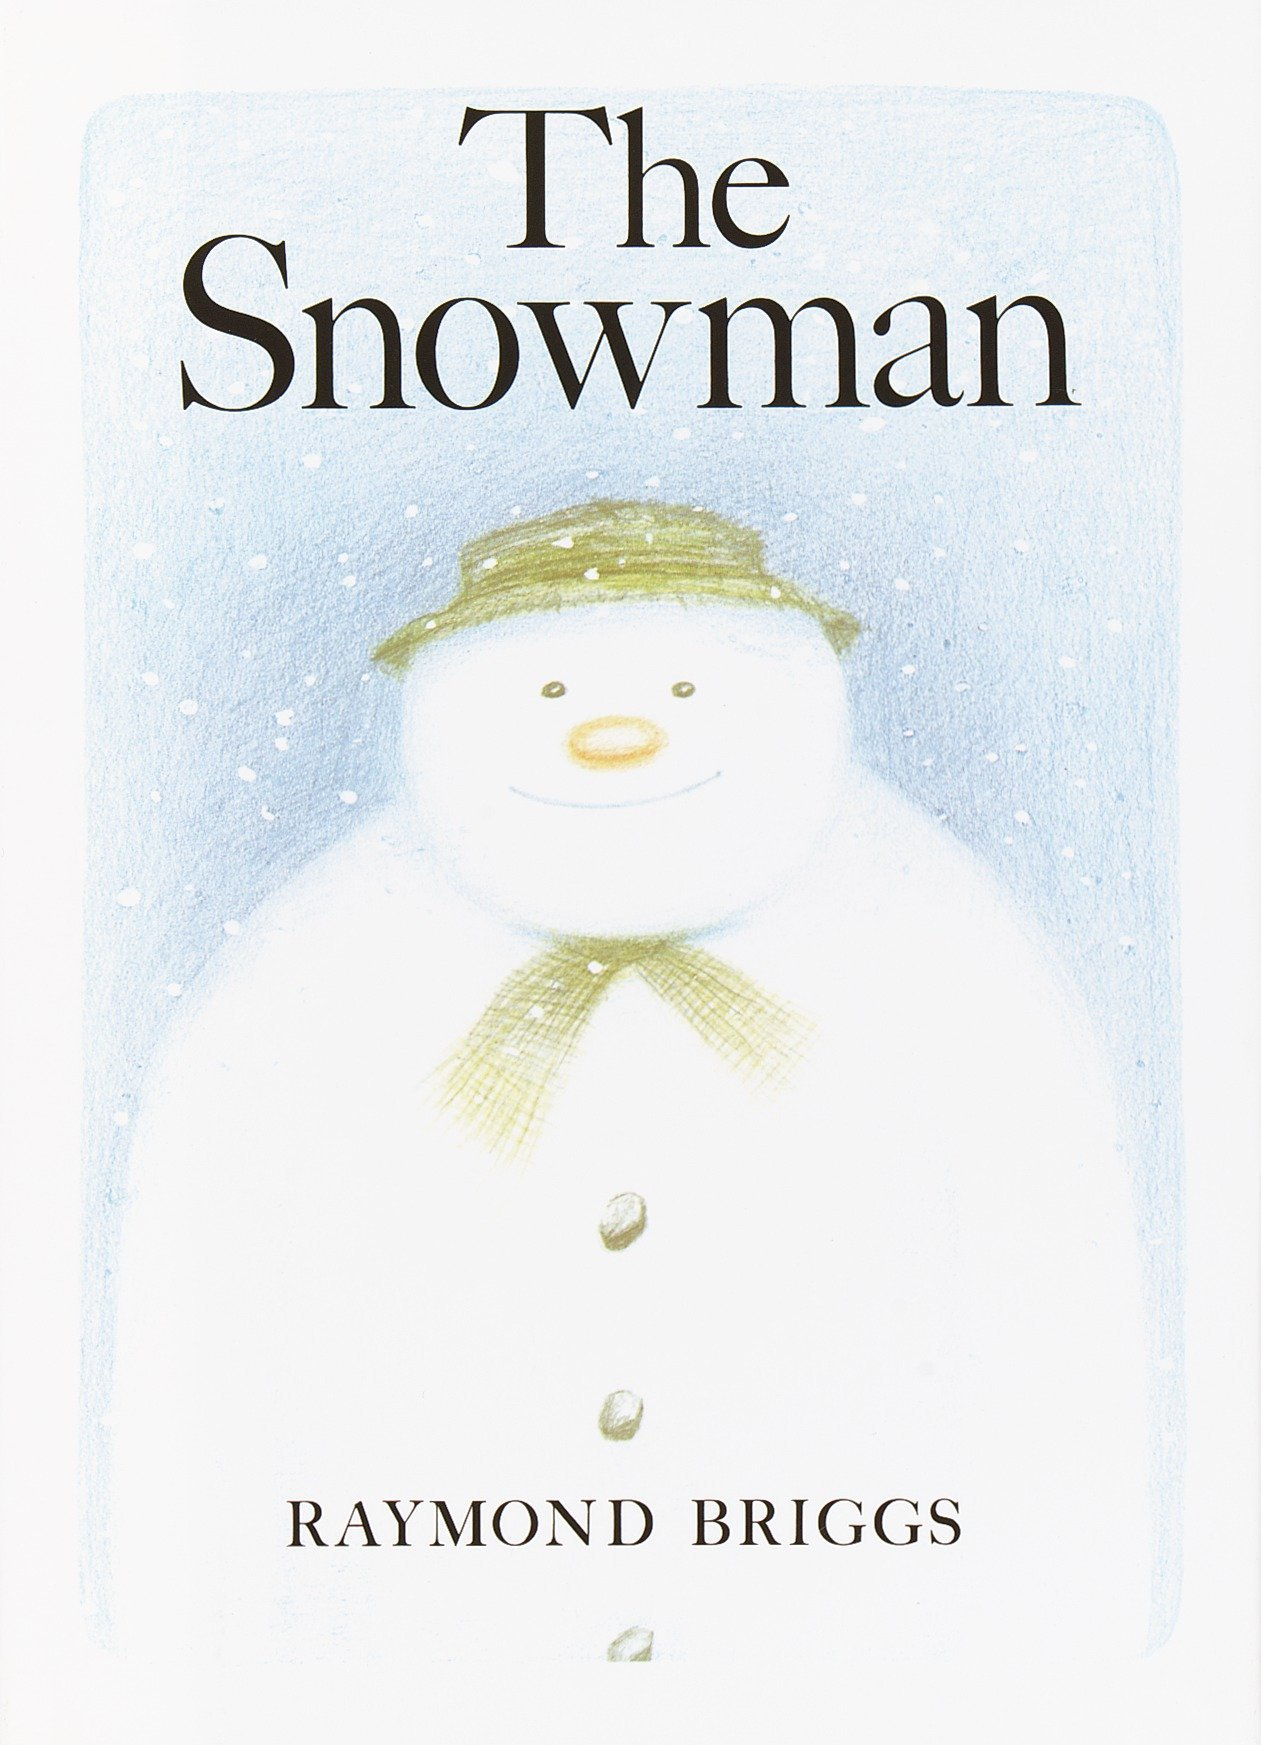 The Best Picture Books for a Snowy Day - The Snowman.jpg